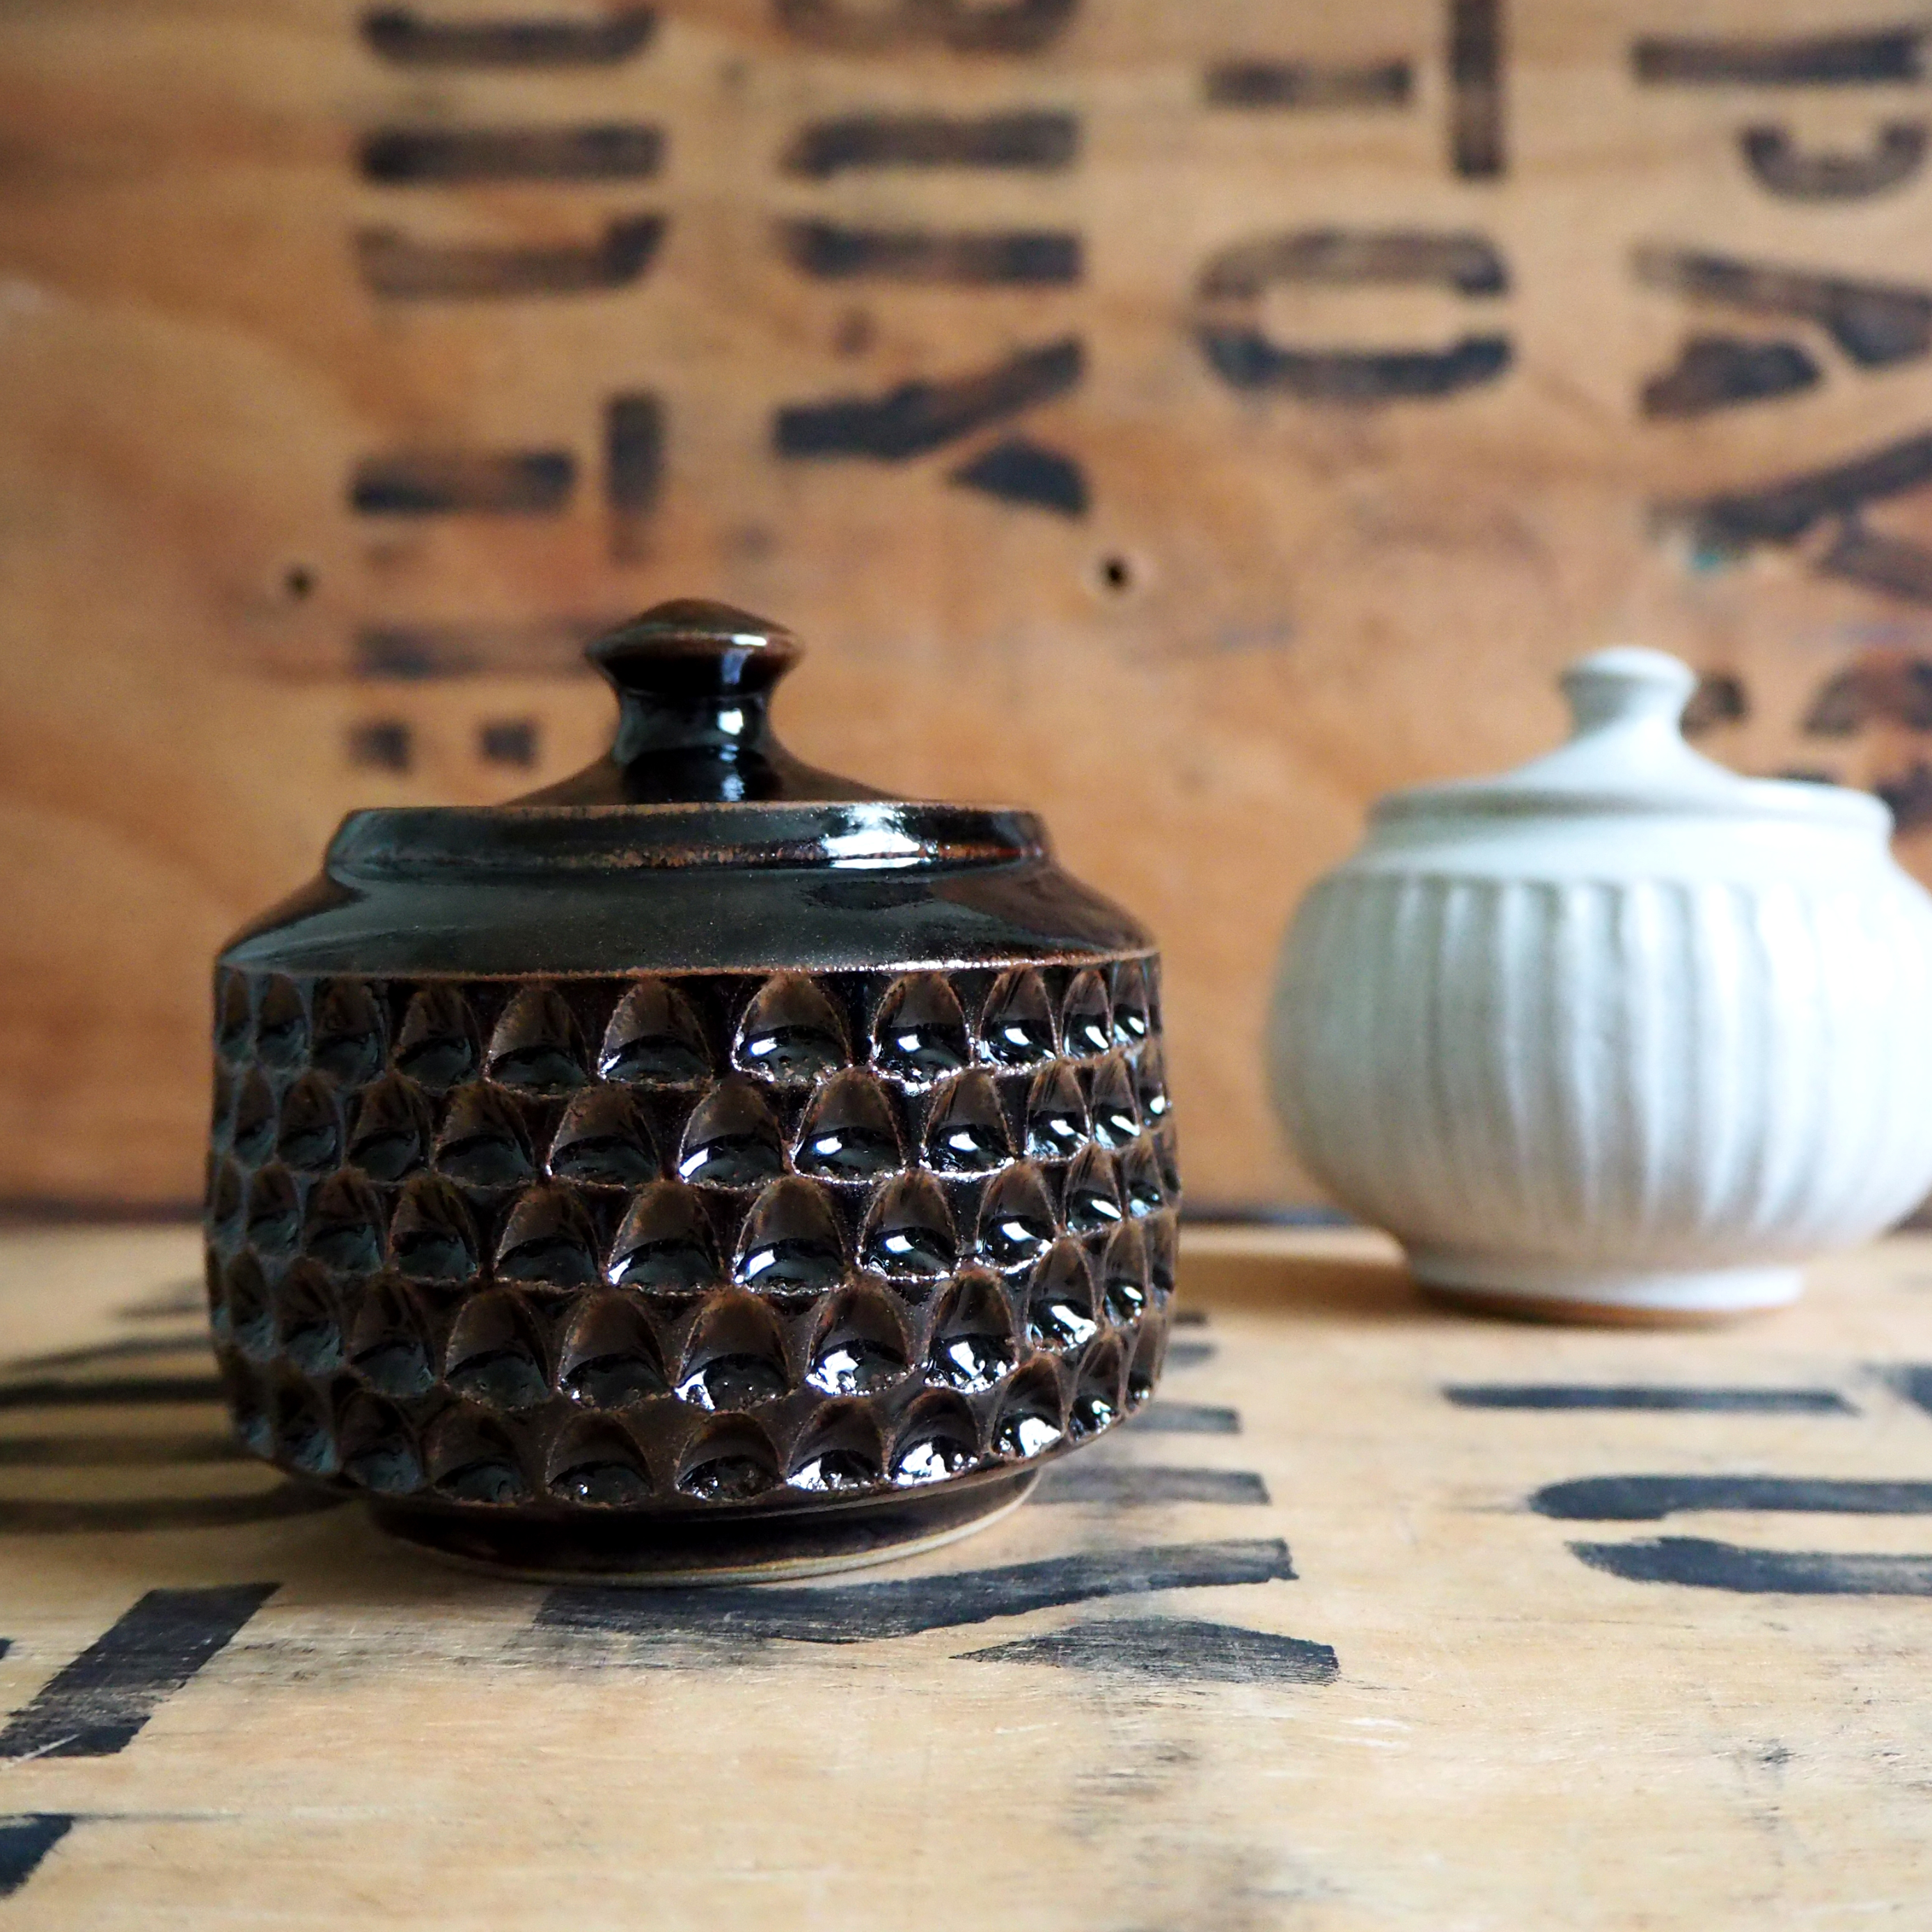 Notched Tea Jar by Robyn Cove